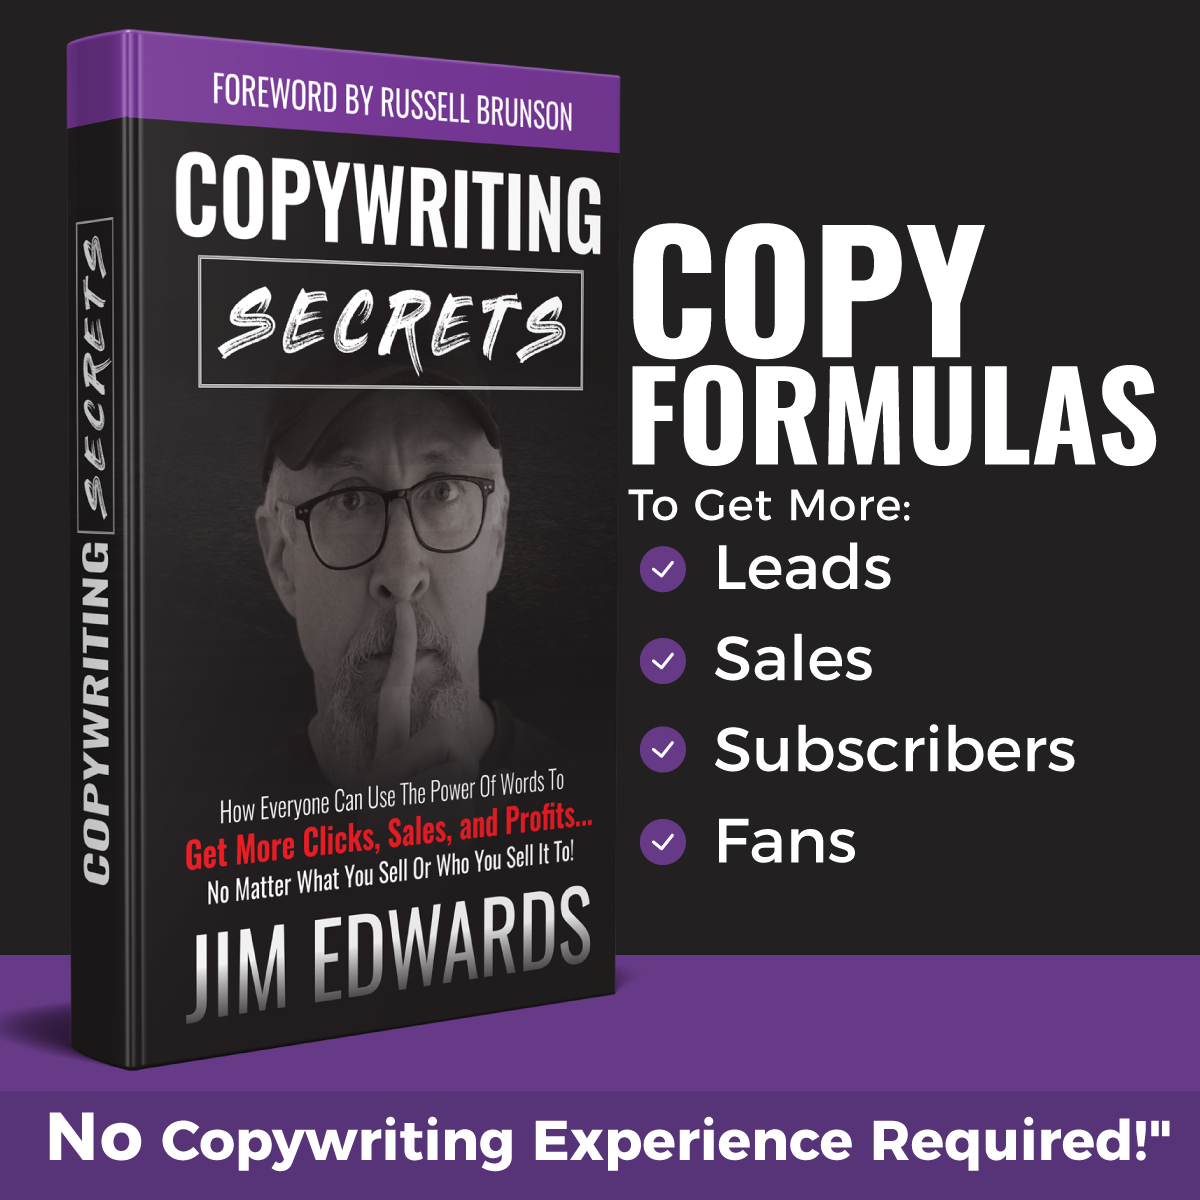 Copywriting Design Ideas